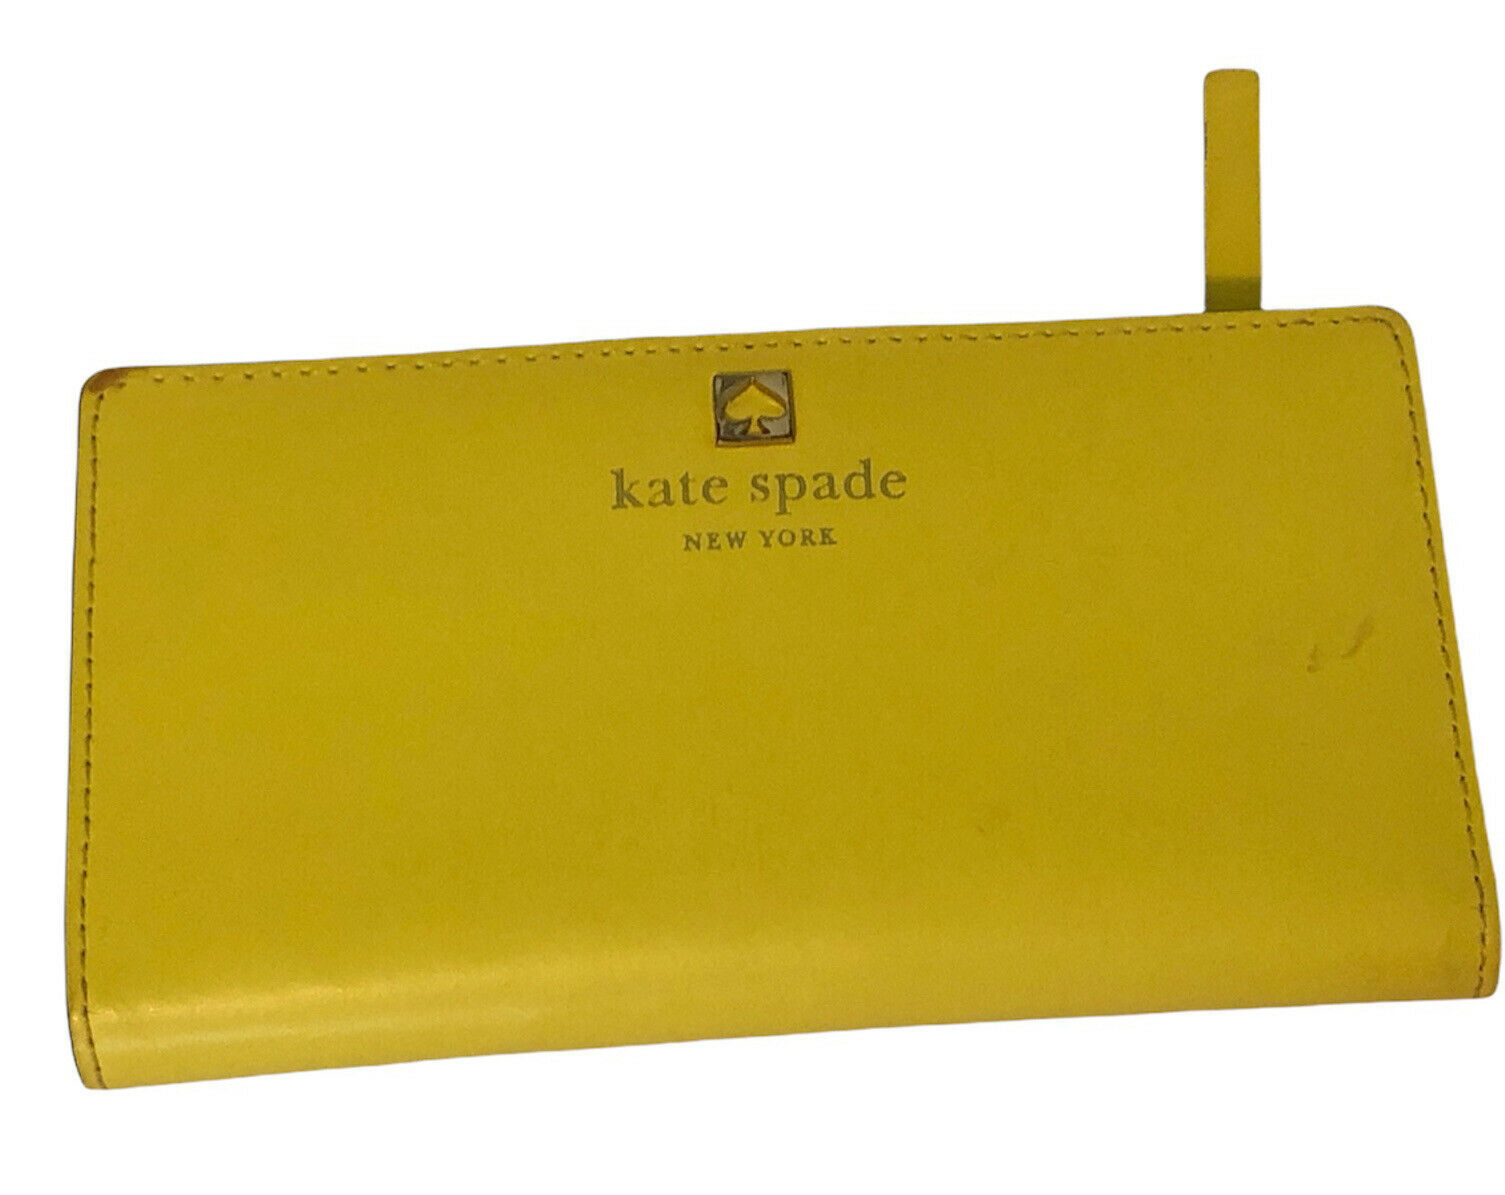 Kate Spade Wallet Stacy Leather Bifold Bright Yellow Credit Cards